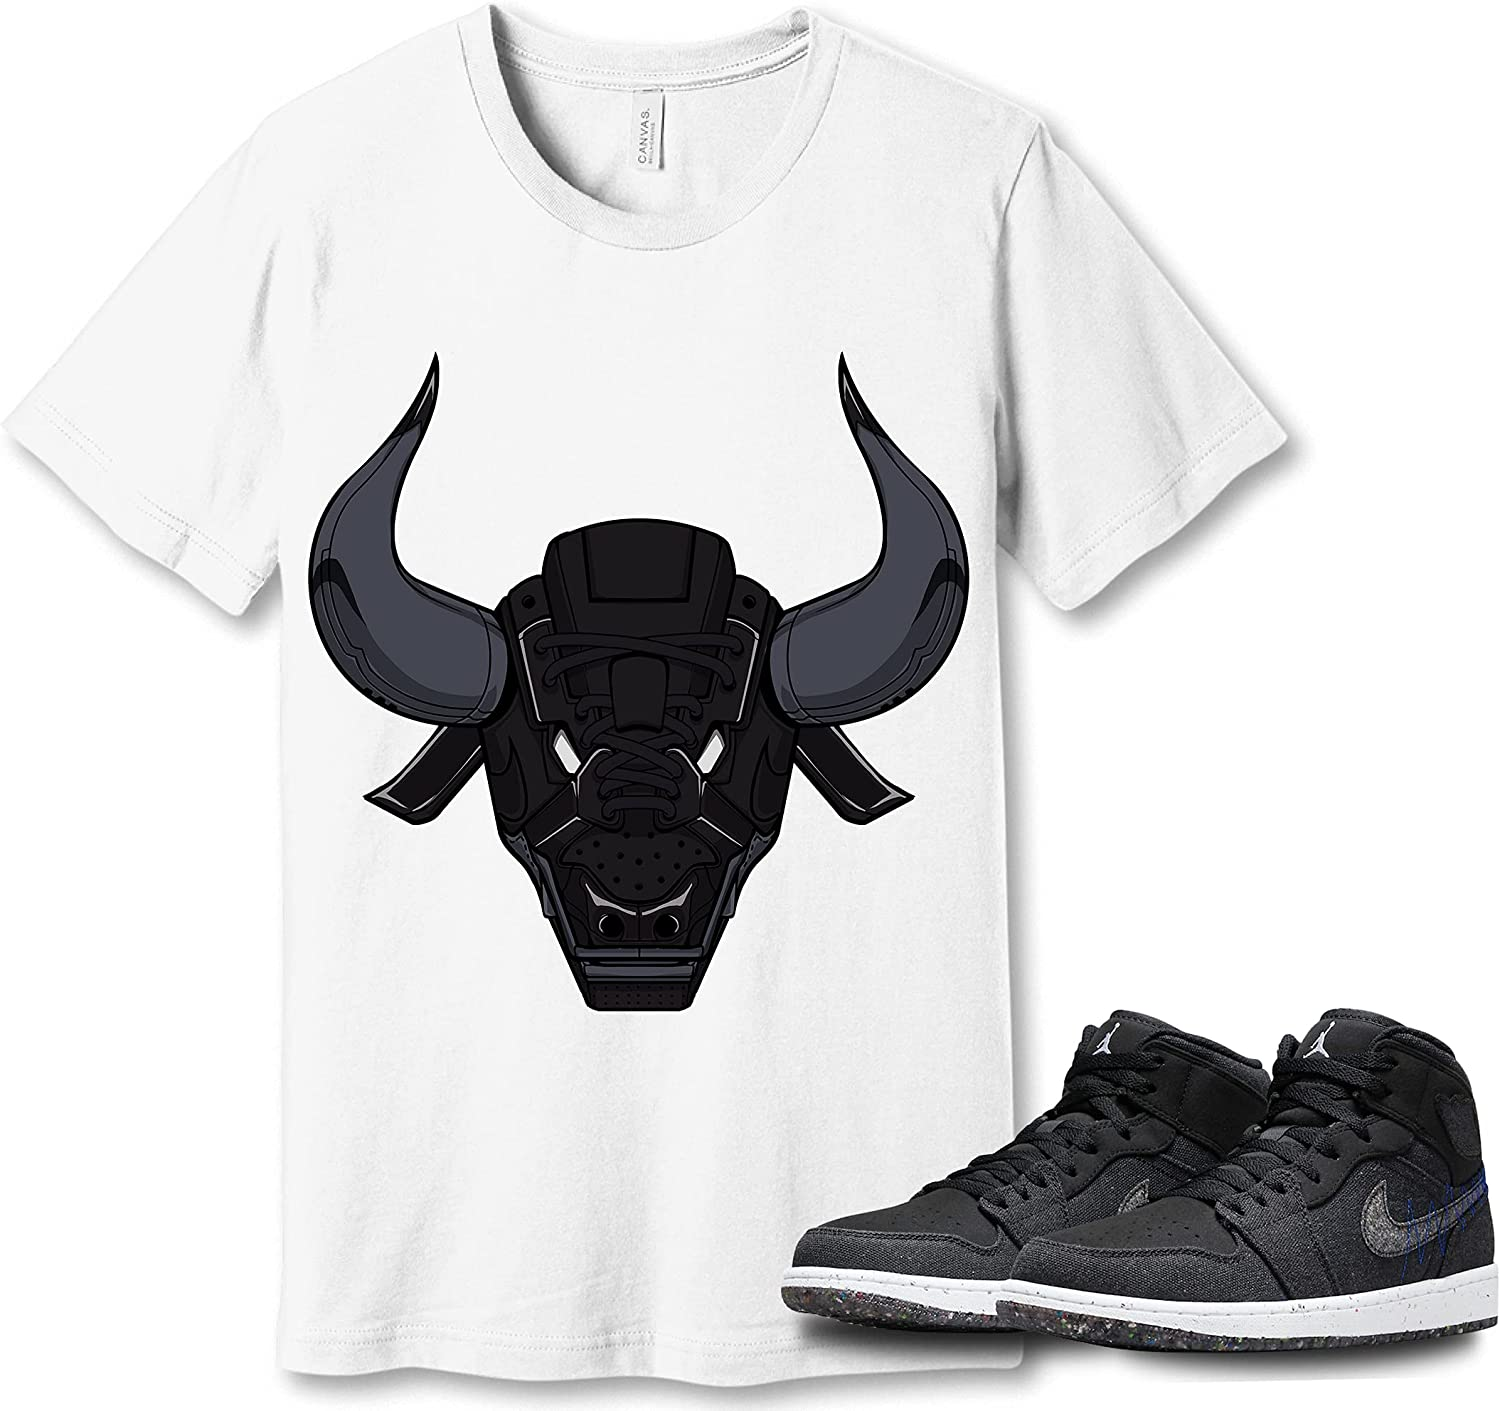 Bull T-Shirt to Match Jordan Sales Very popular! results No. 1 Crater Features Blue Contrast Sti